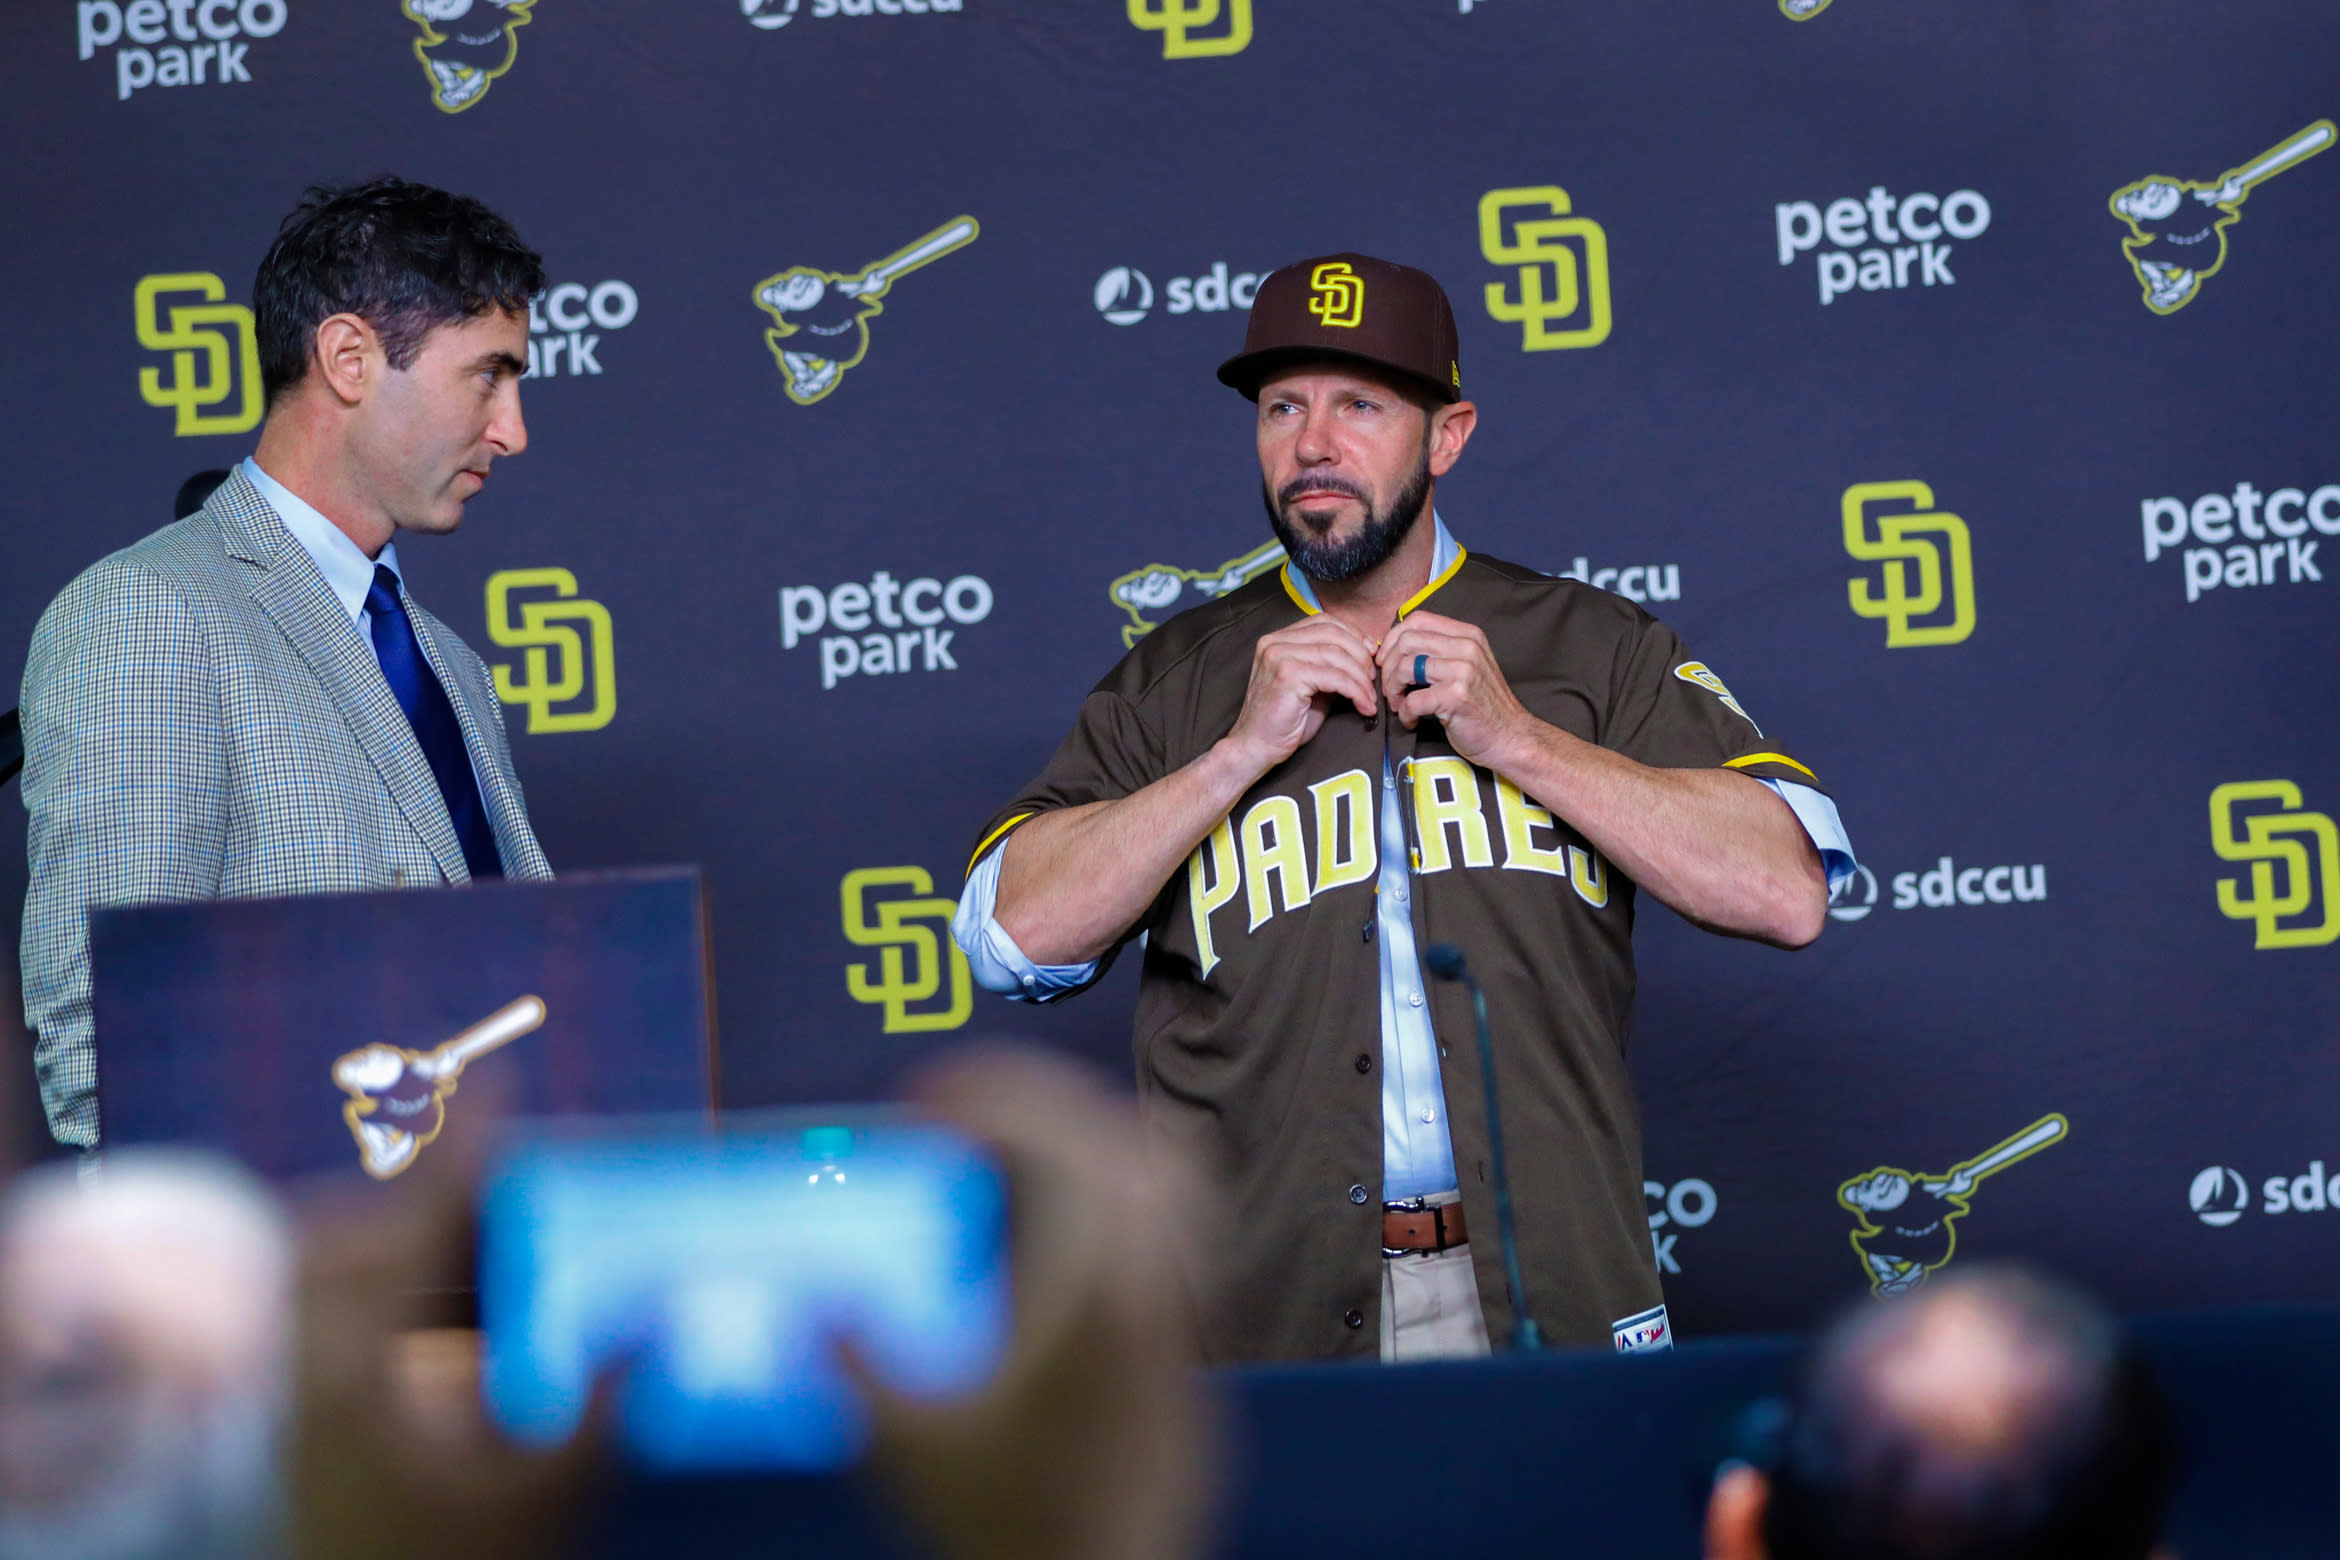 San Diego Padres general manager A.J. Preller, left, introduces the baseball team's new manager, Jayce Tingler, during a news conference Friday, Oct. 31, 2019, in San Diego. (Nelvin C. Cepeda/The San Diego Union-Tribune via AP)